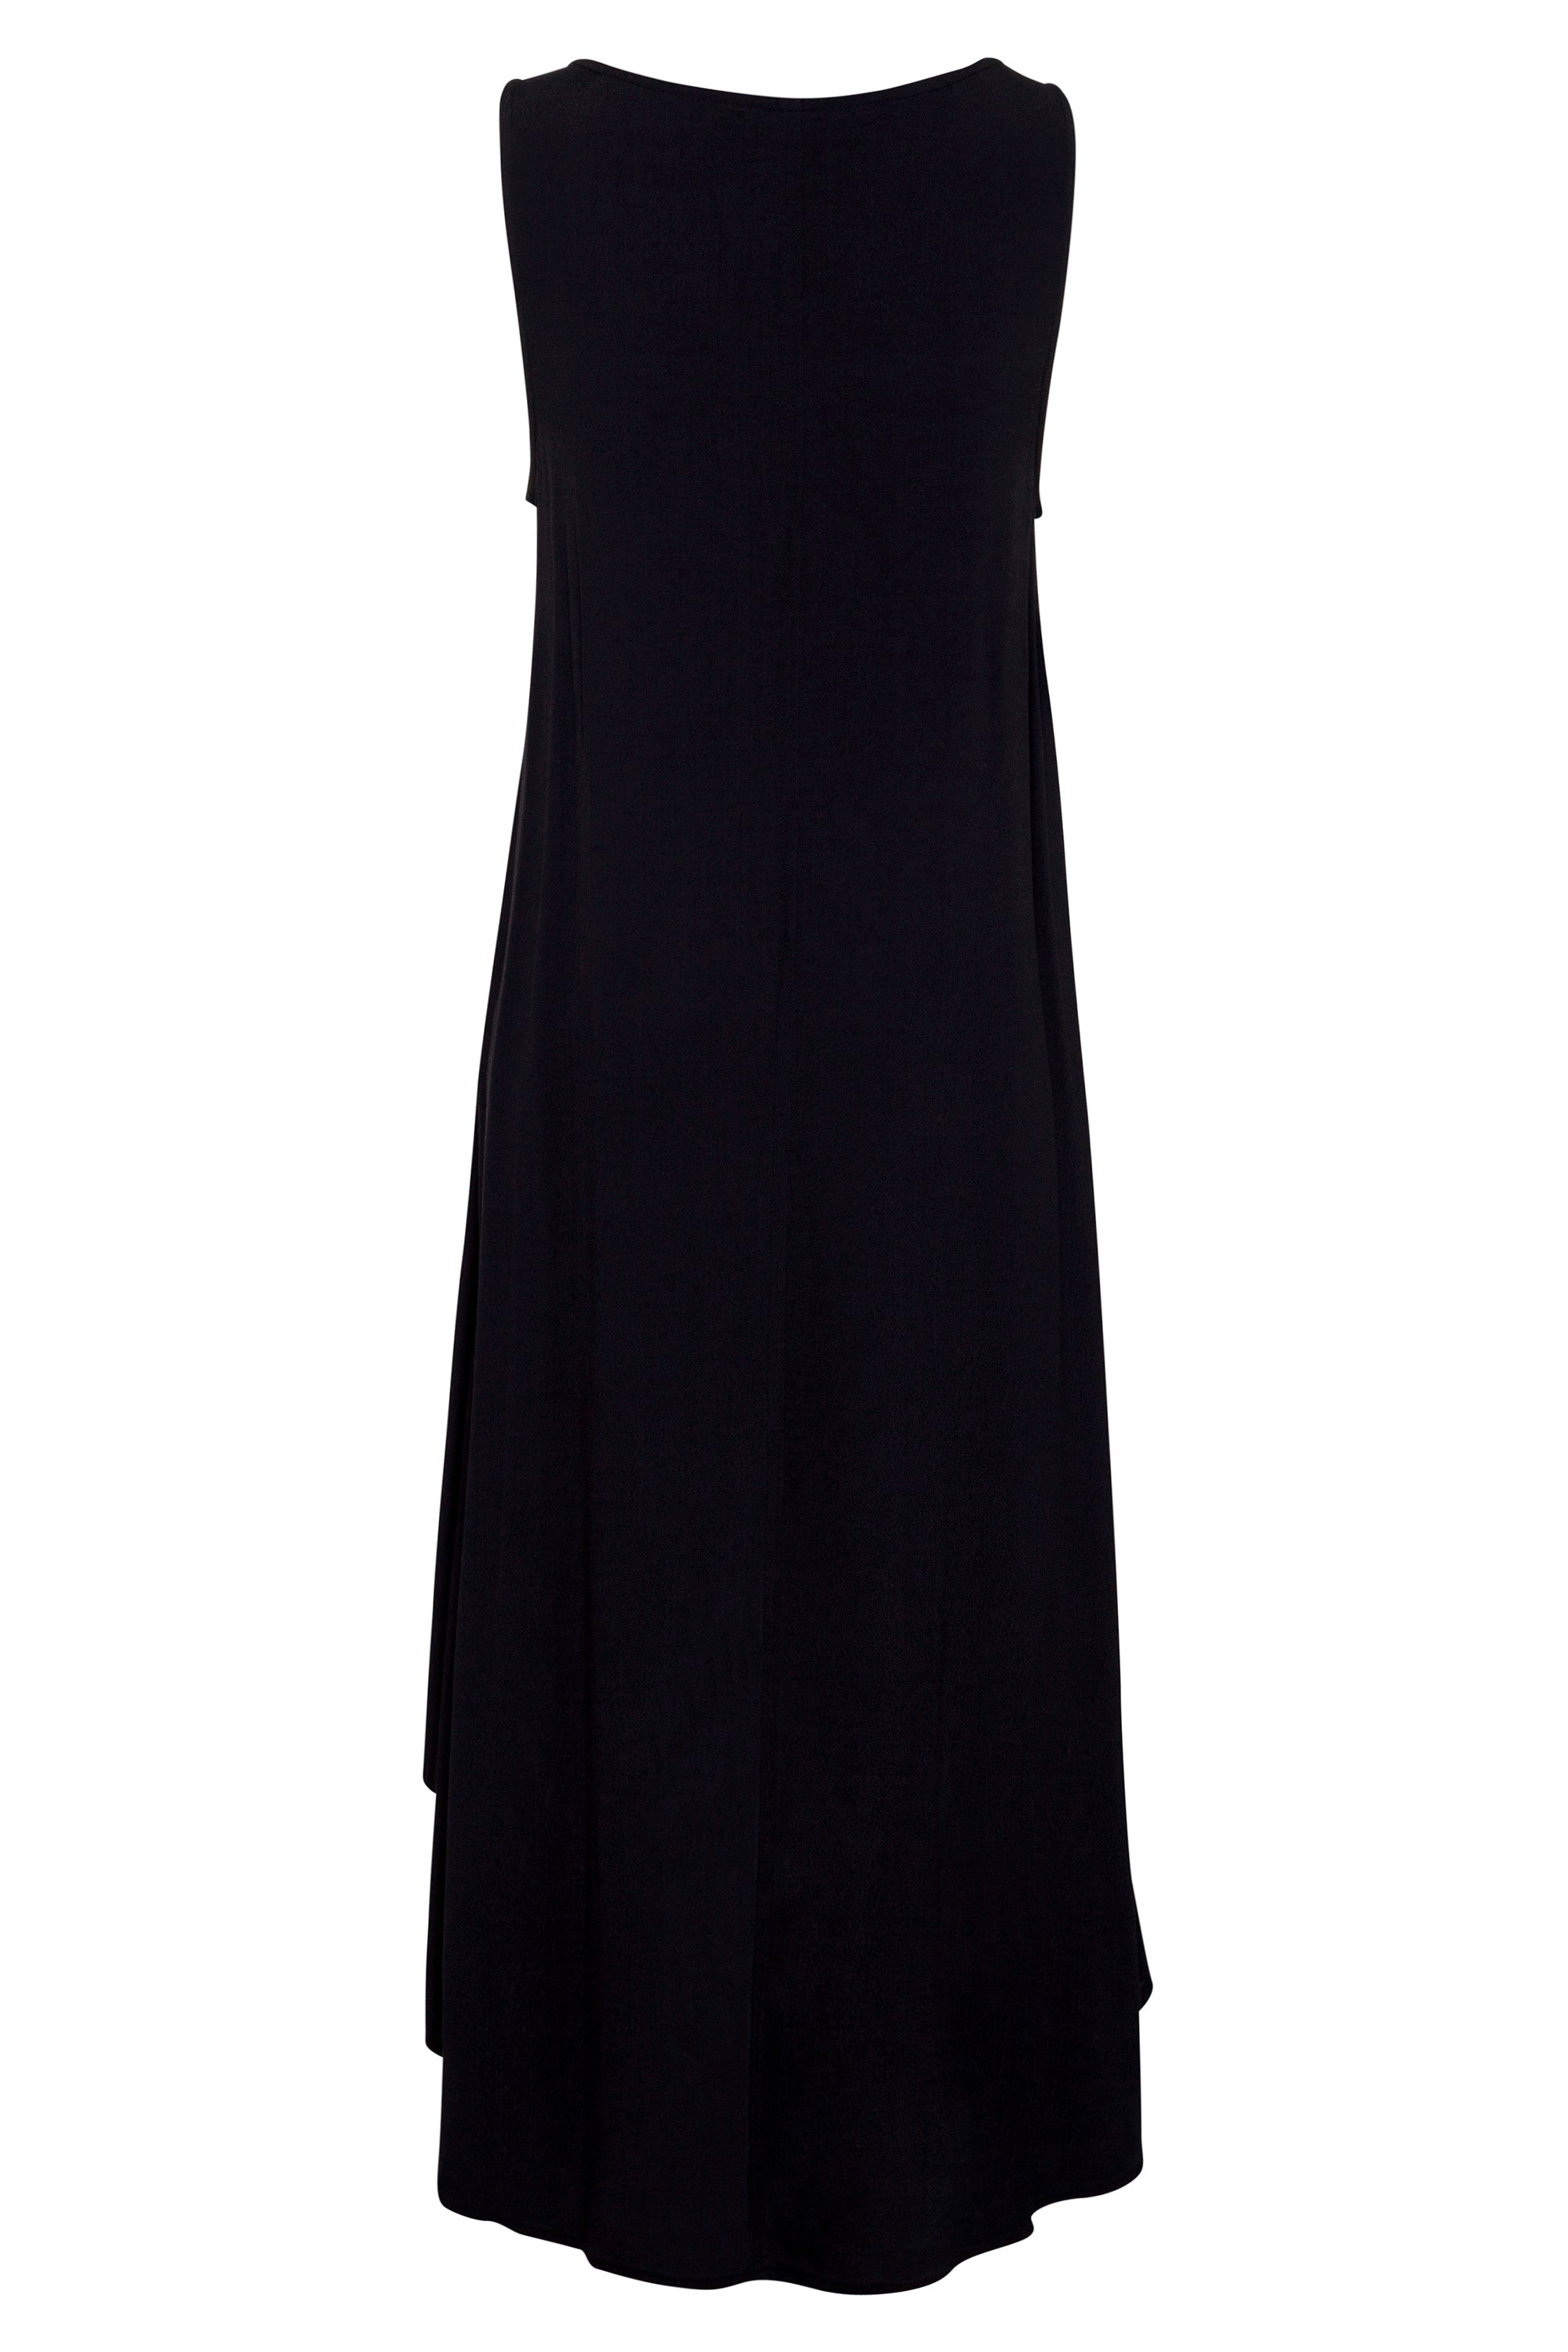 Mia Dress In Black